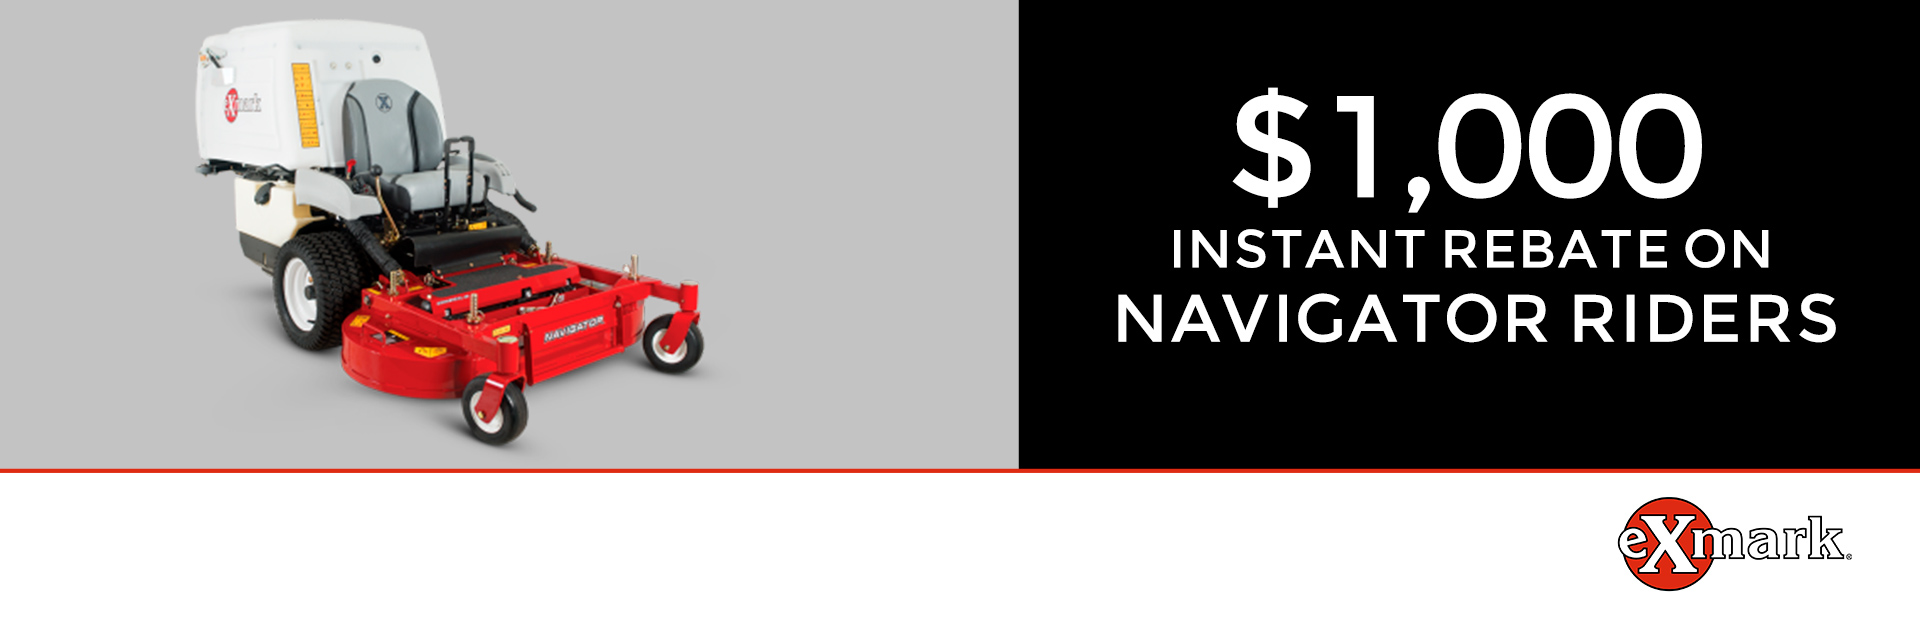 Exmark: $1000 Instant Rebate on Navigator Riders